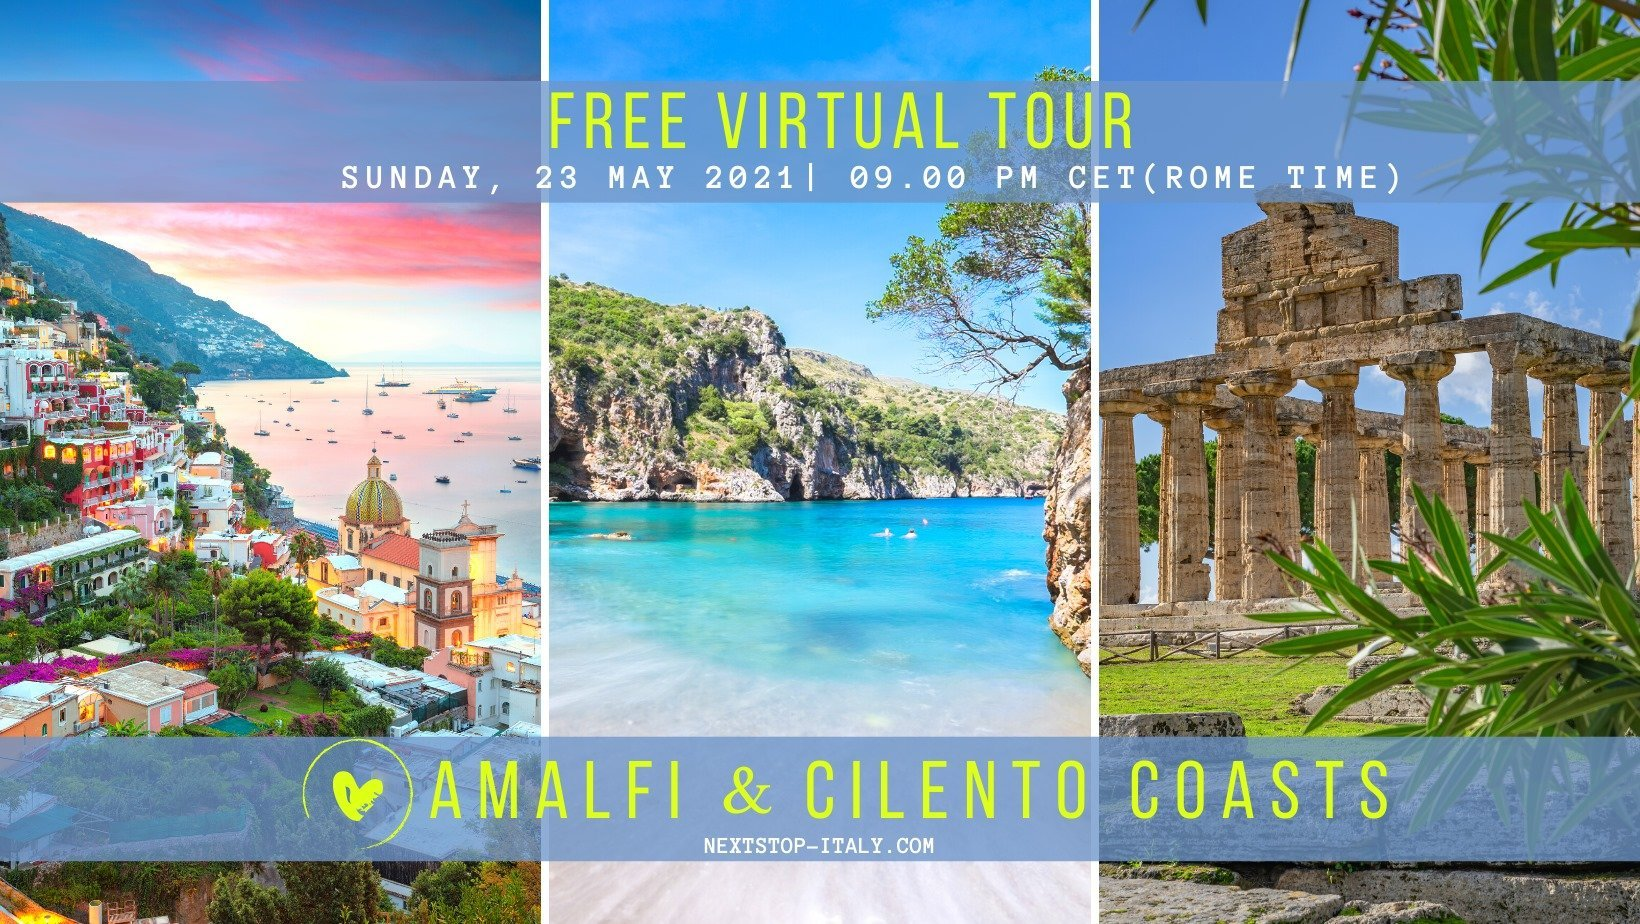 AMALFI & CILENTO COASTS TOUR